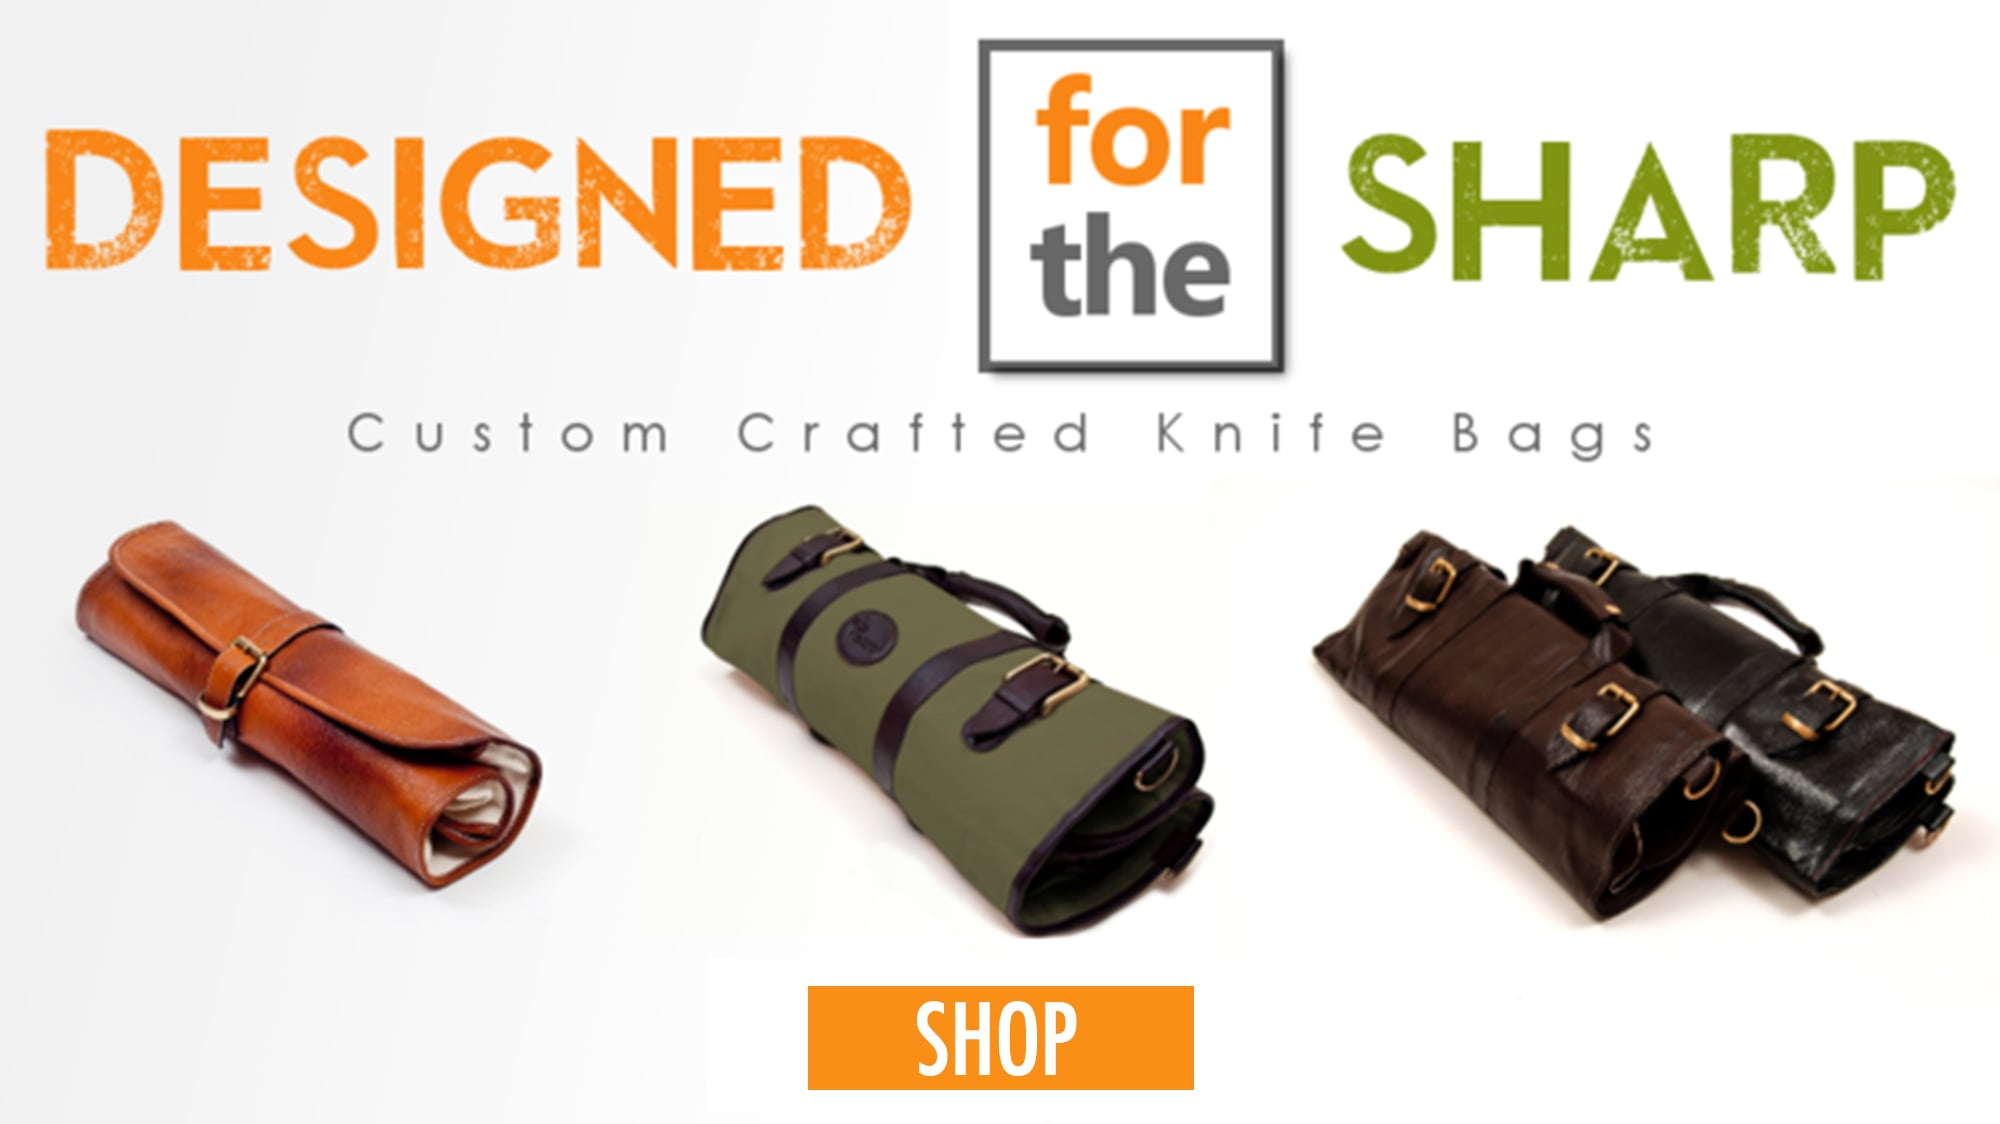 Excellent Knives To Chef Knives Handbags Home Bric Culinary Luggage Chef Knives To Go Gift Card Chef Knives To Go Coupon Roll Bags nice food Chefs Knives To Go